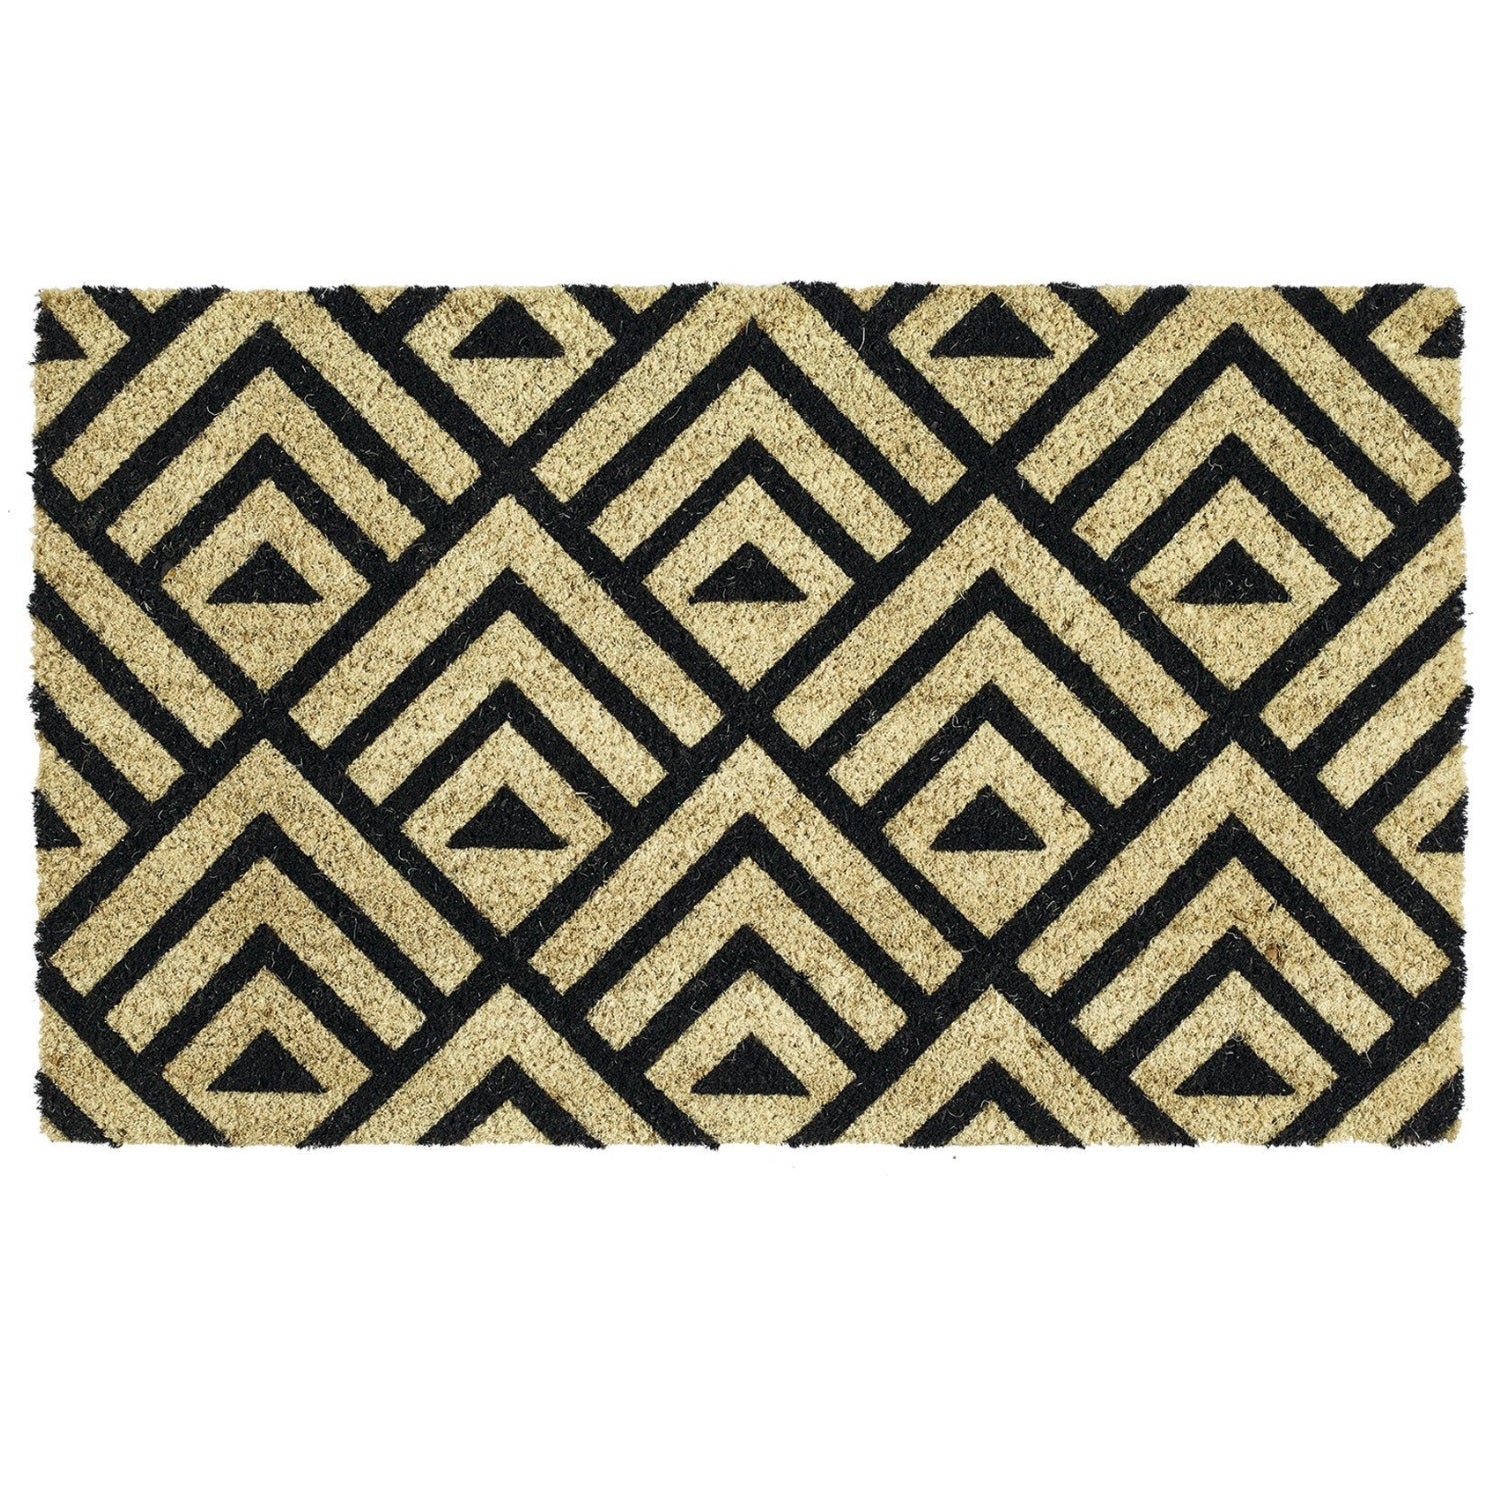 Tri Deco Doormat Trideco Door Mat Patio Decor